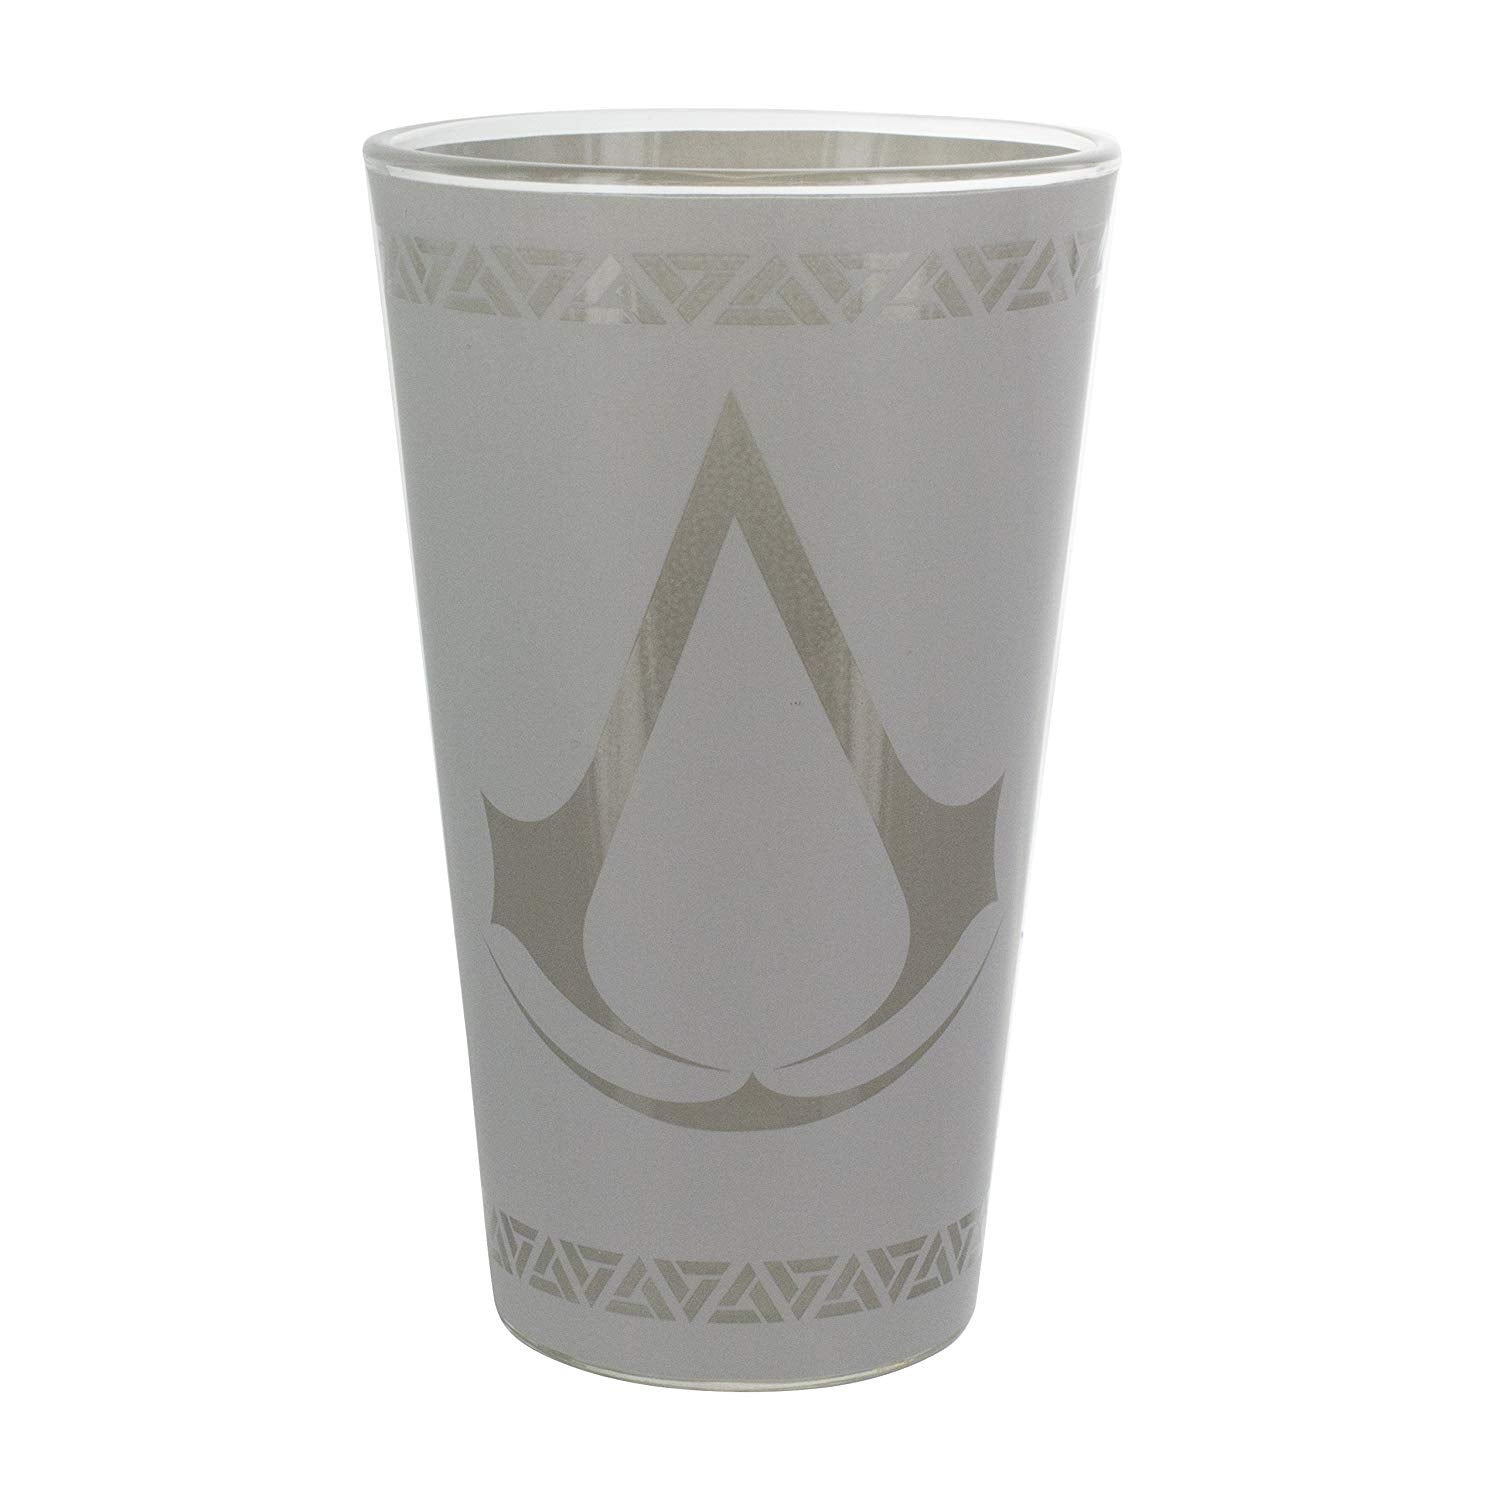 Grand verre Assassin's Creed